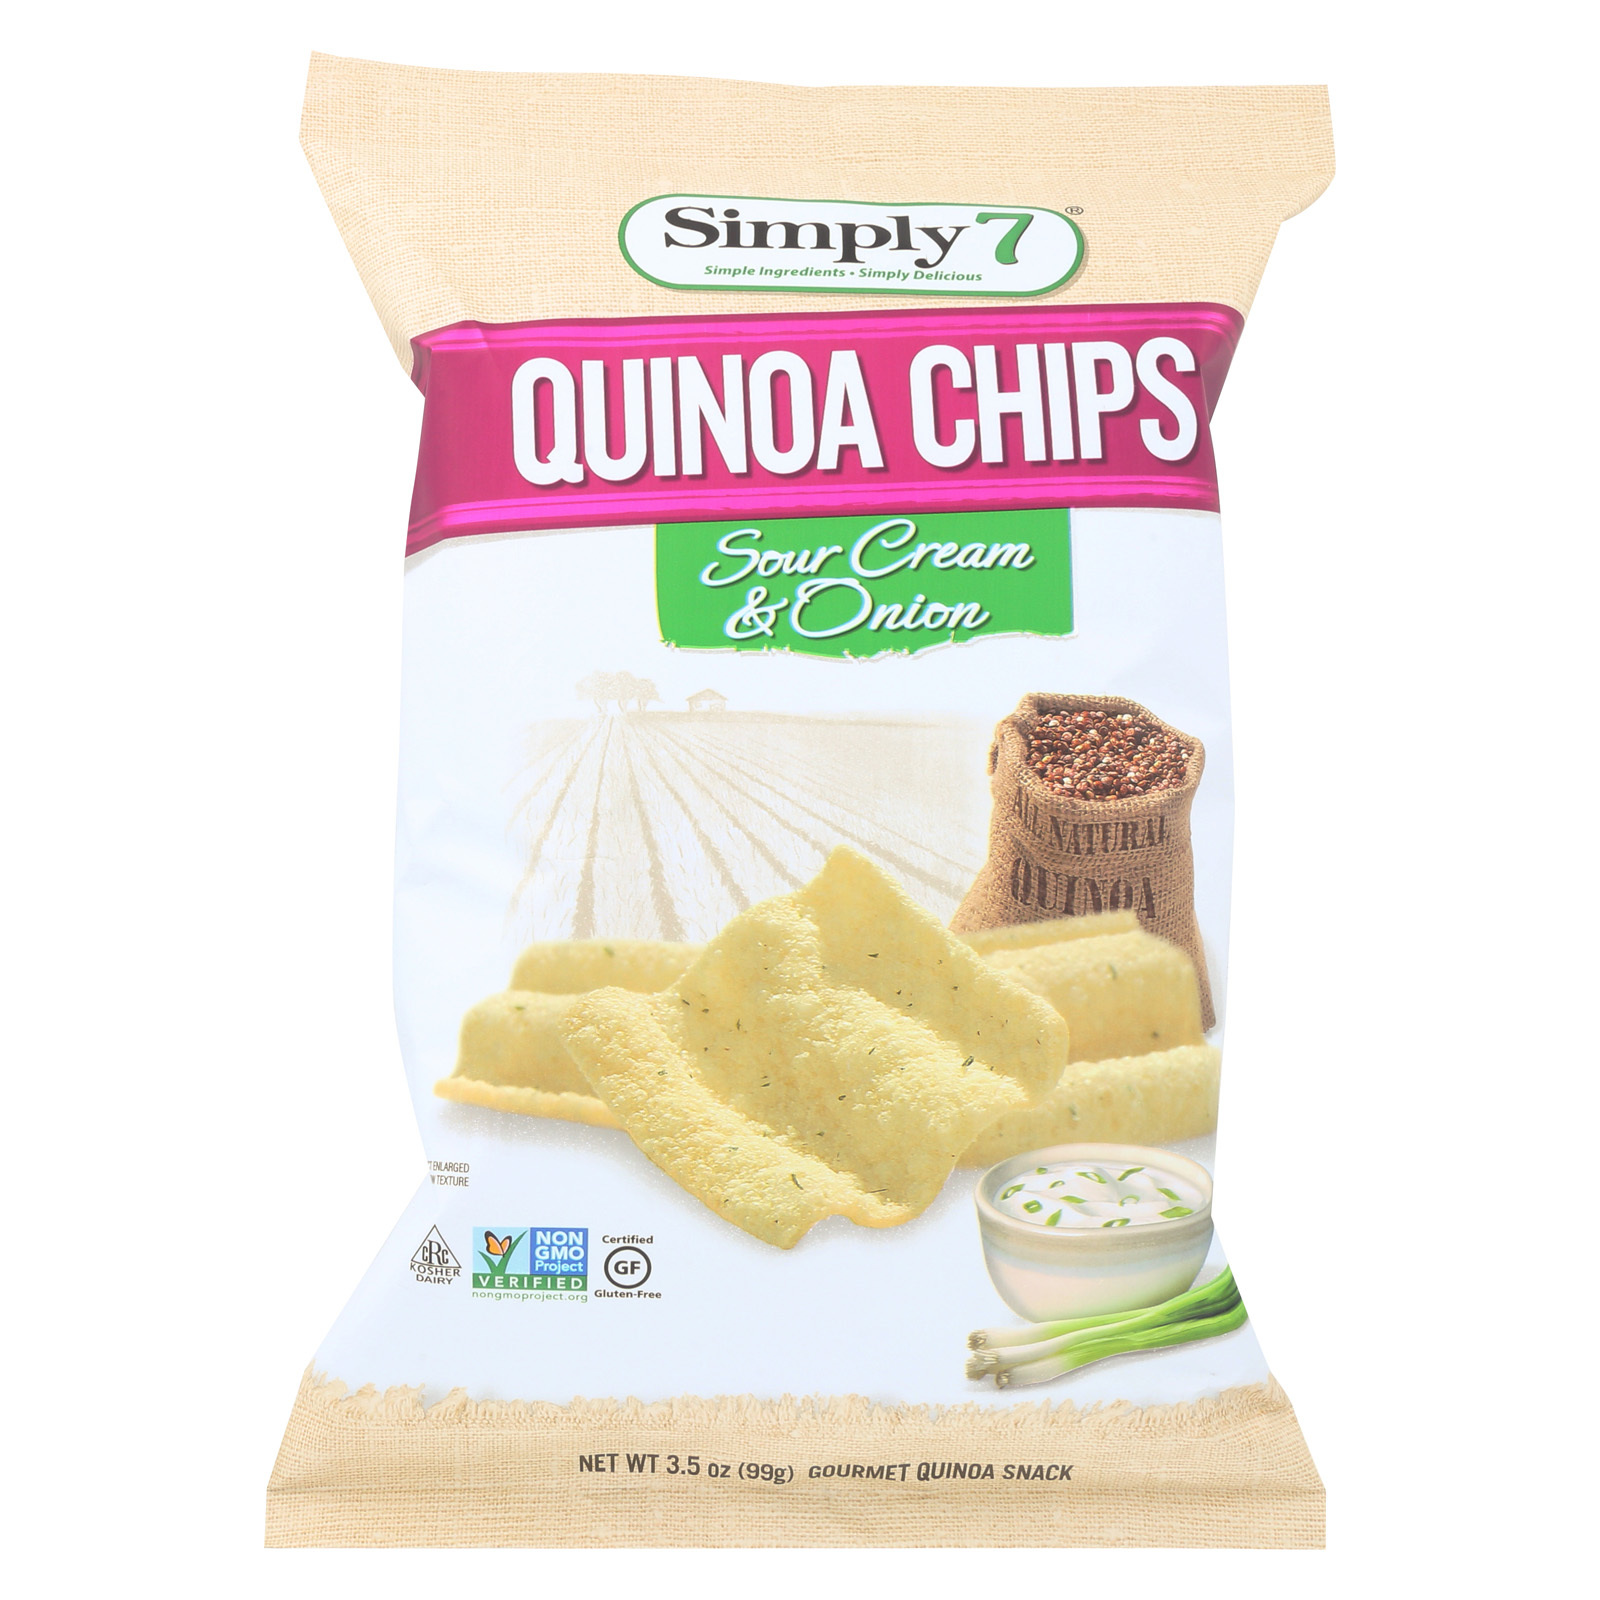 Simply 7 Quinoa Chips - Sour Cream and Onion - Case of 12 - 3.5 oz.